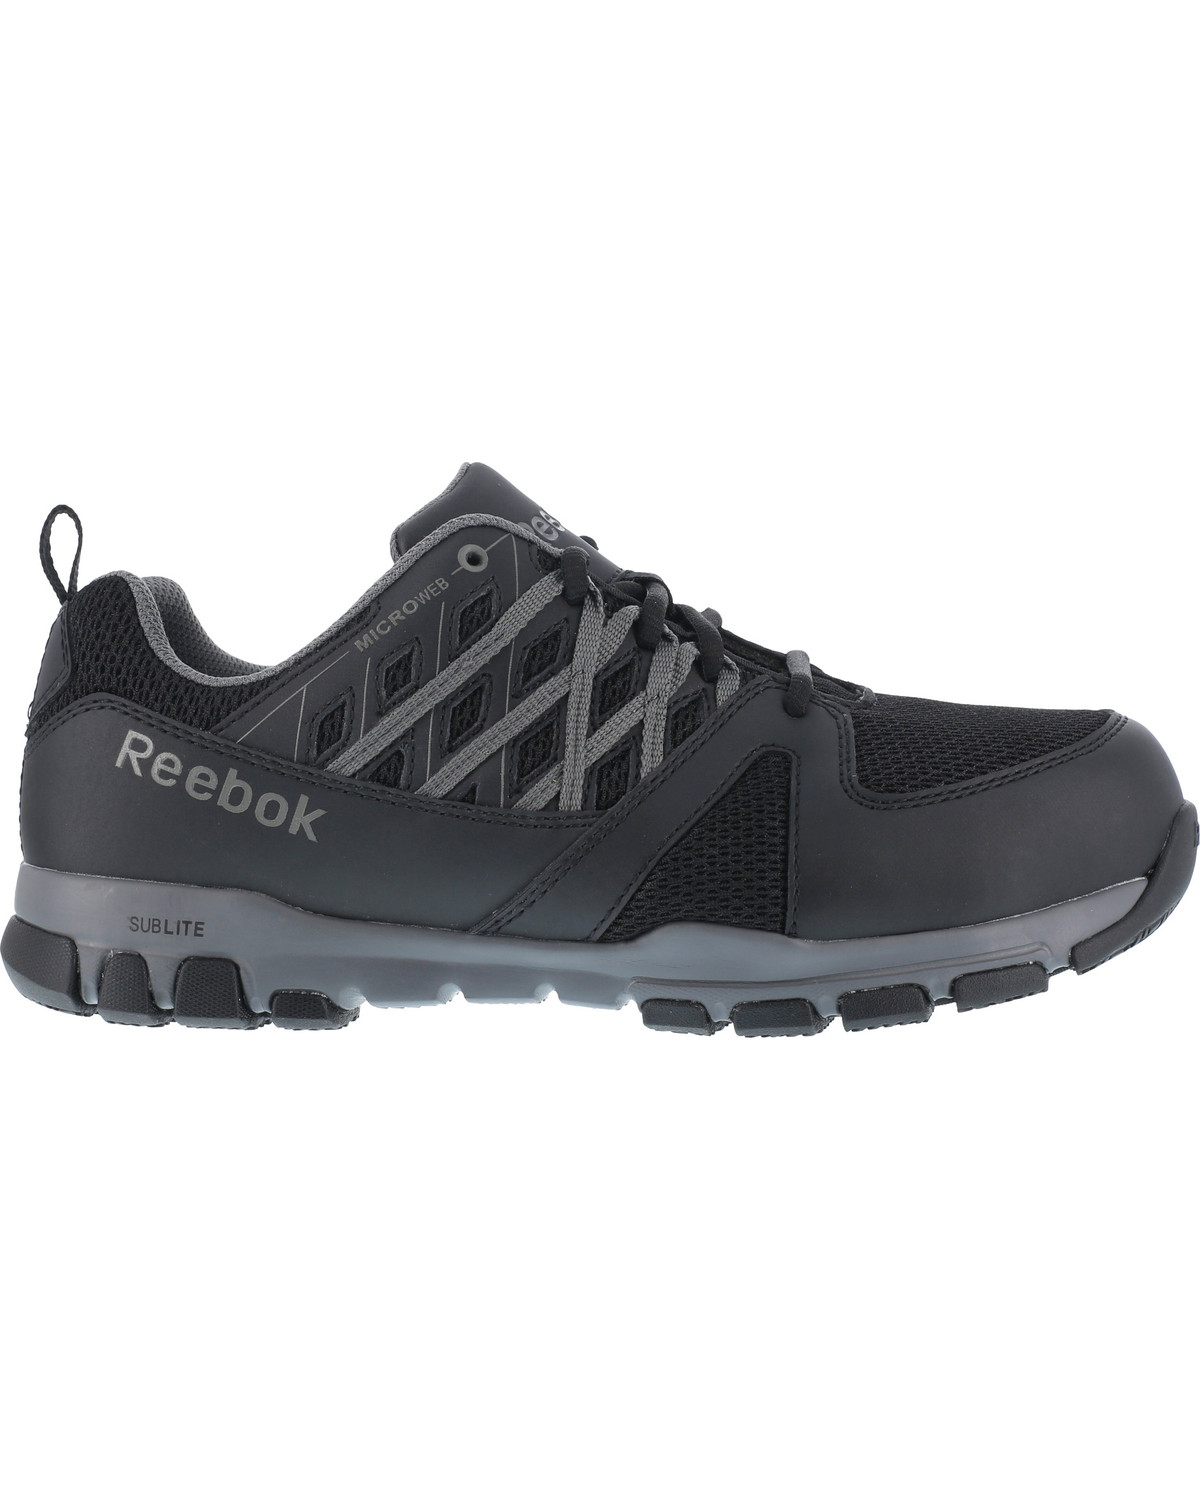 Reebok Men s Leather with MicroWeb Athletic Oxfords - Steel Toe ... 787ad7085